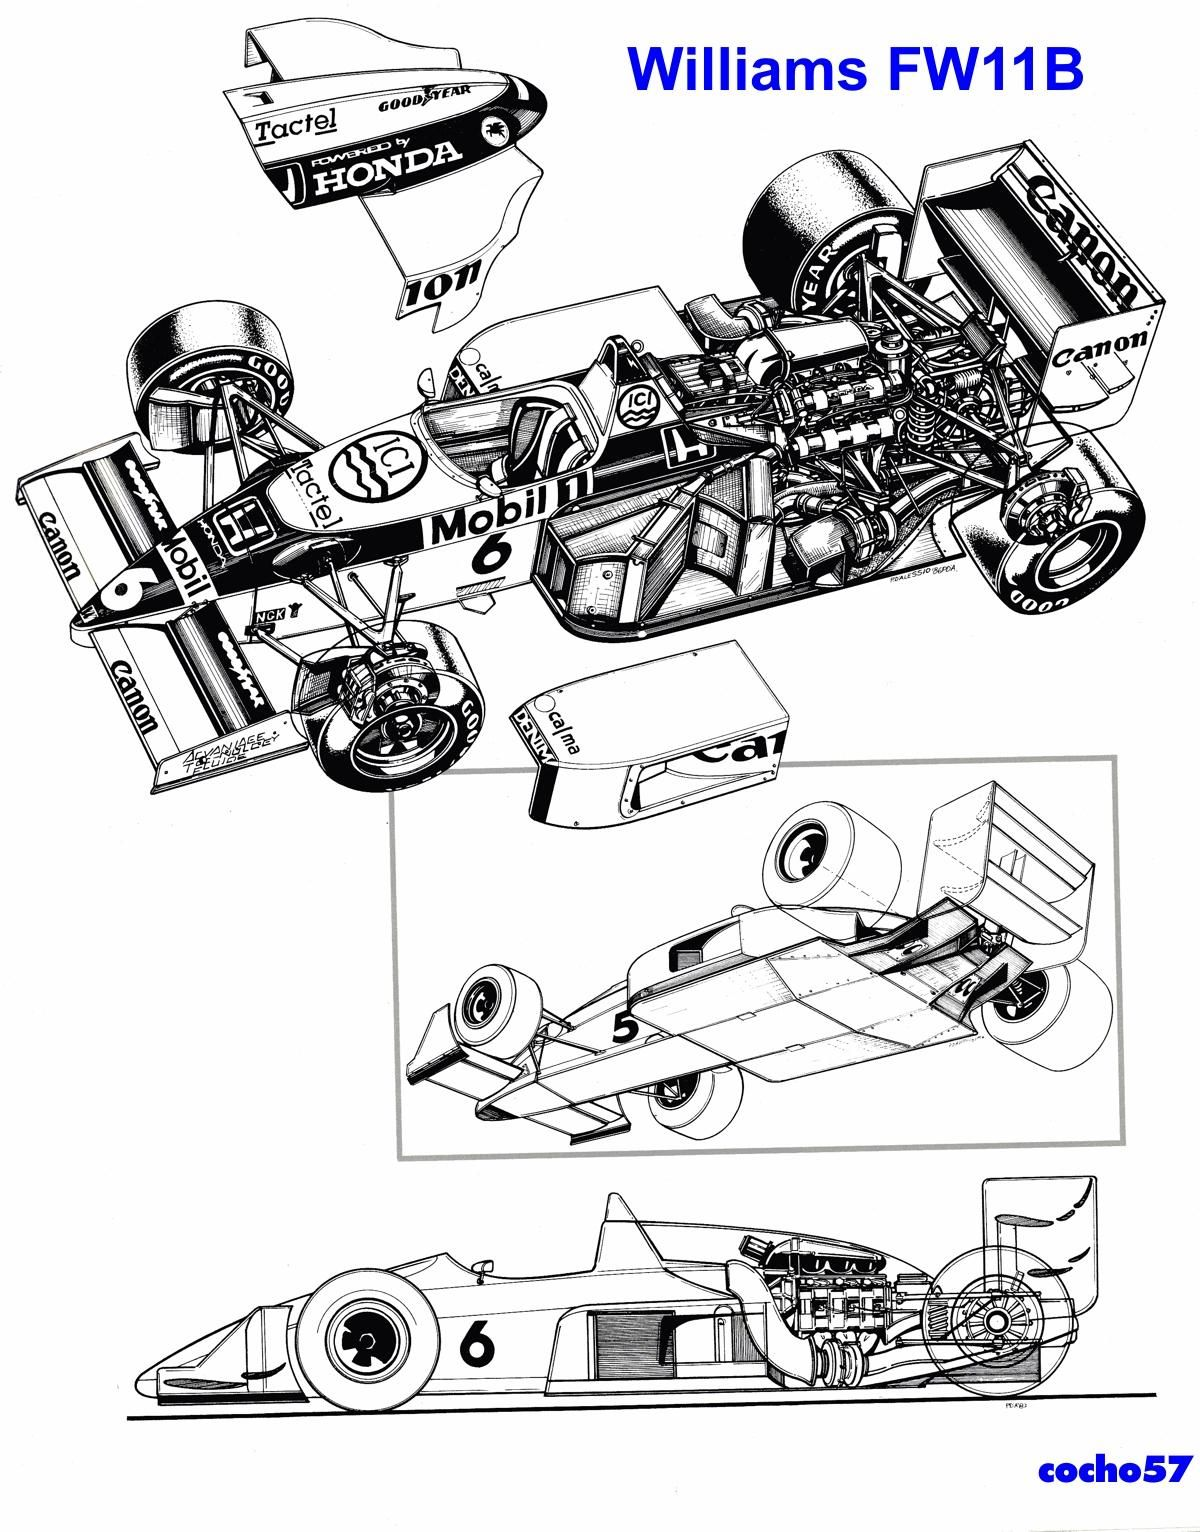 Williams Fw 11b Honda Disenopatrick Head Sergio Rinland